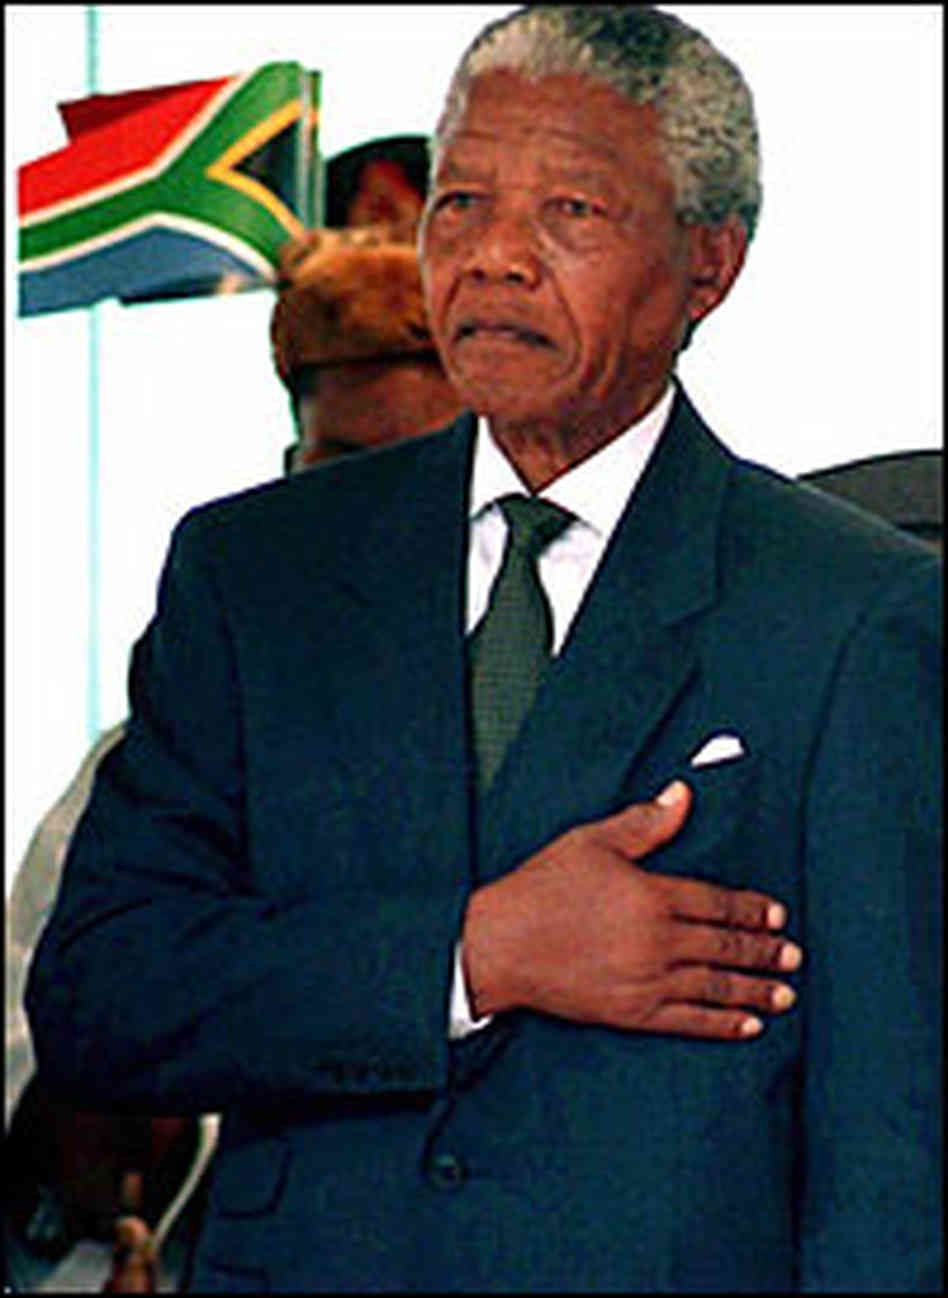 000 After Mandela South Africa as Miracle or Mirage? People